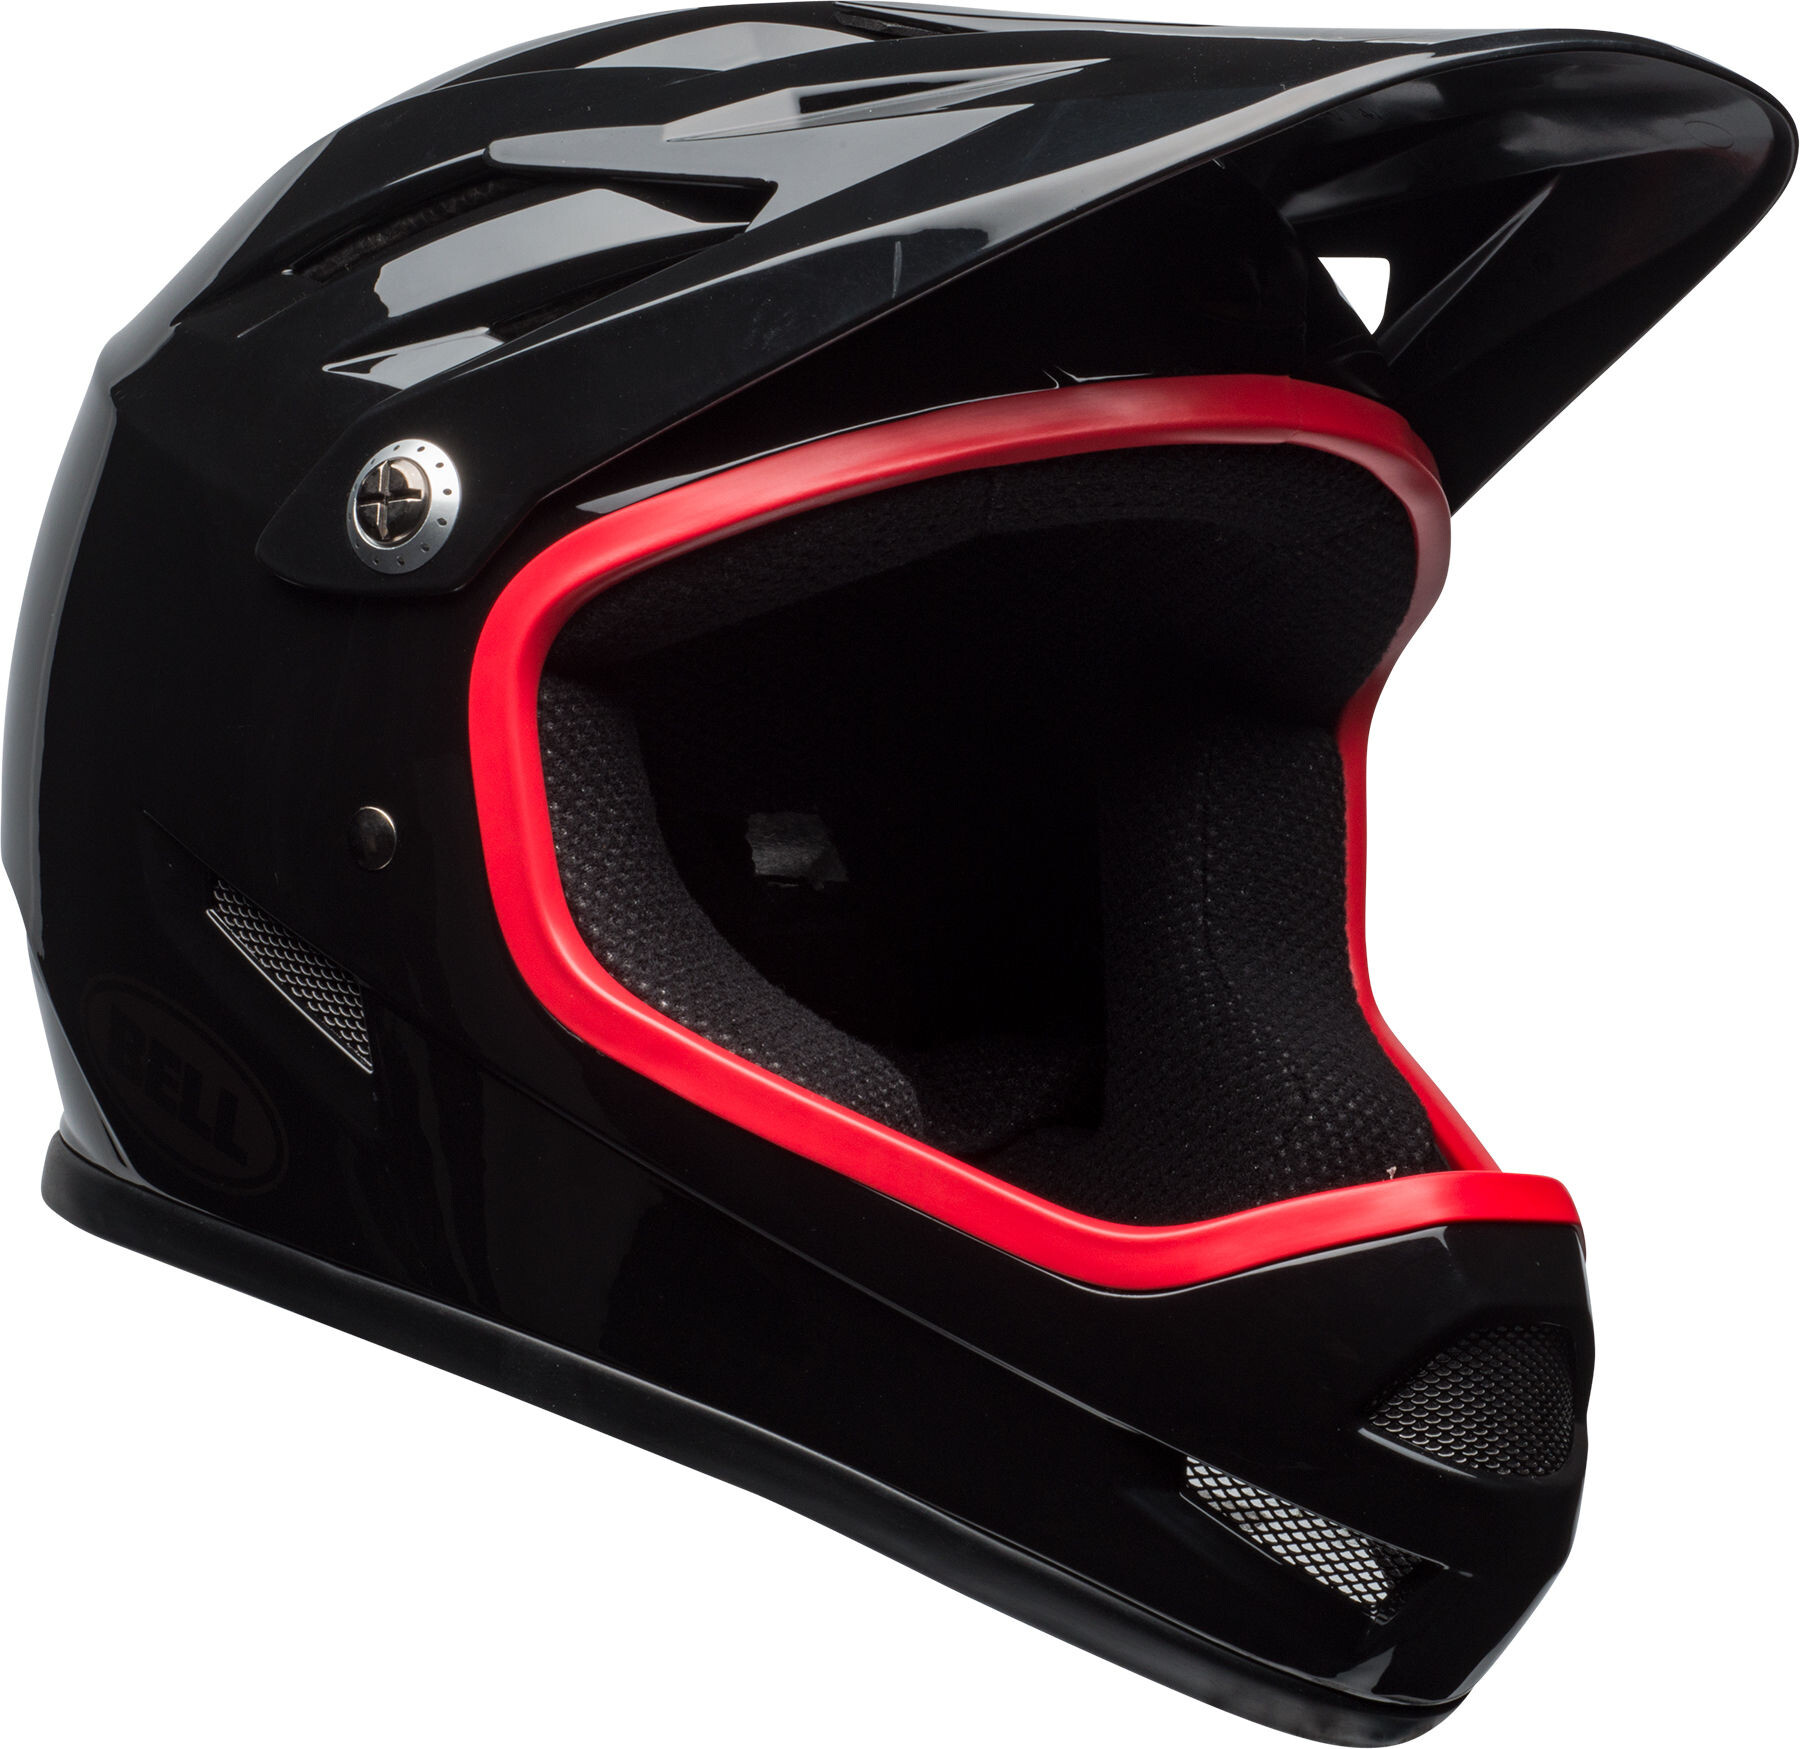 bell sanction full face helmet black hibiscus online kaufen. Black Bedroom Furniture Sets. Home Design Ideas